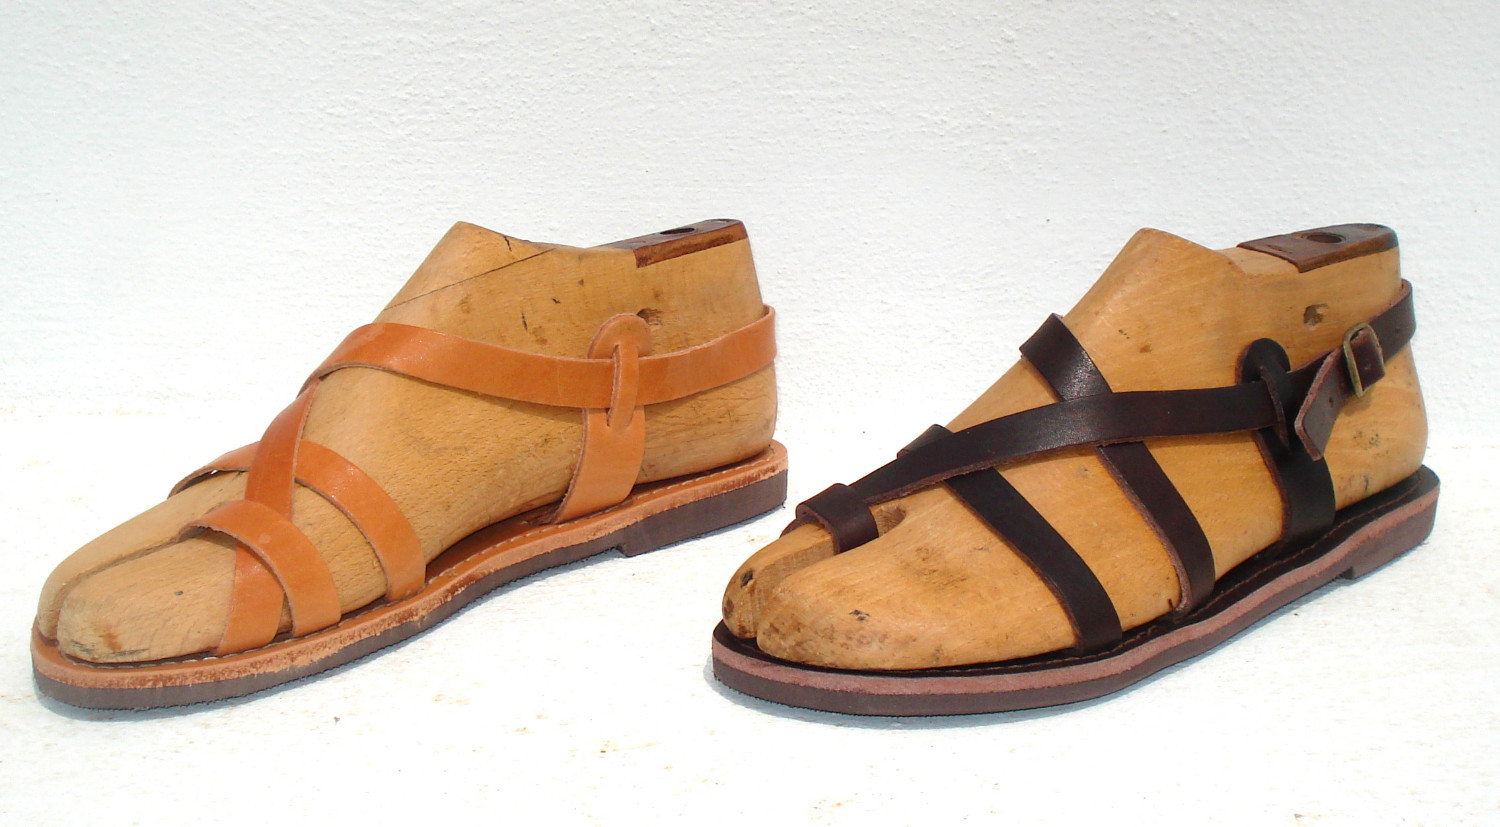 3632641f3e2 Leather sandals from Greece - Ananias Sandals